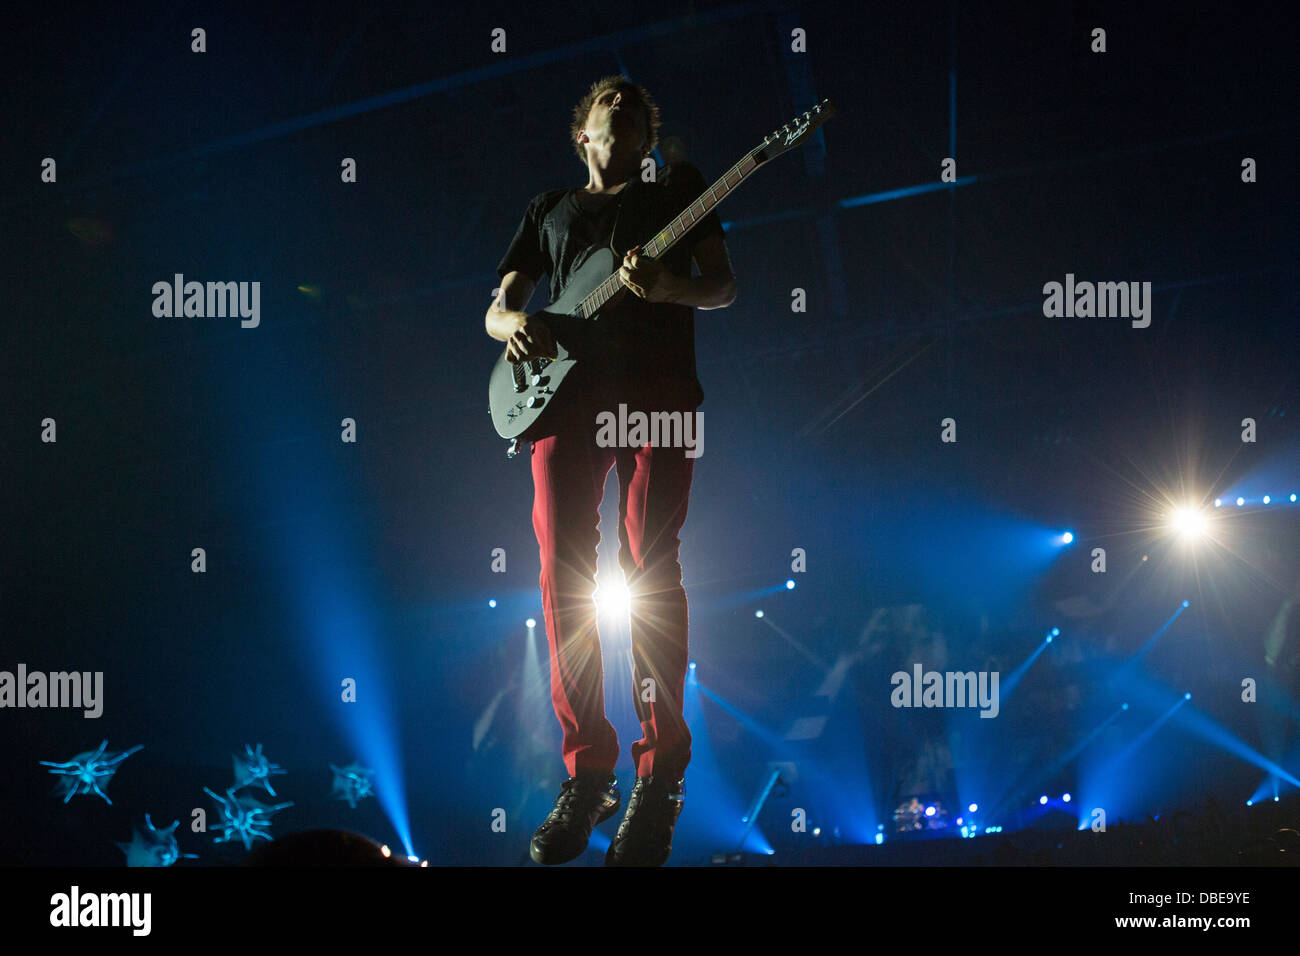 Muse live concert, Telenor Arena, Oslo, Norway - Stock Image